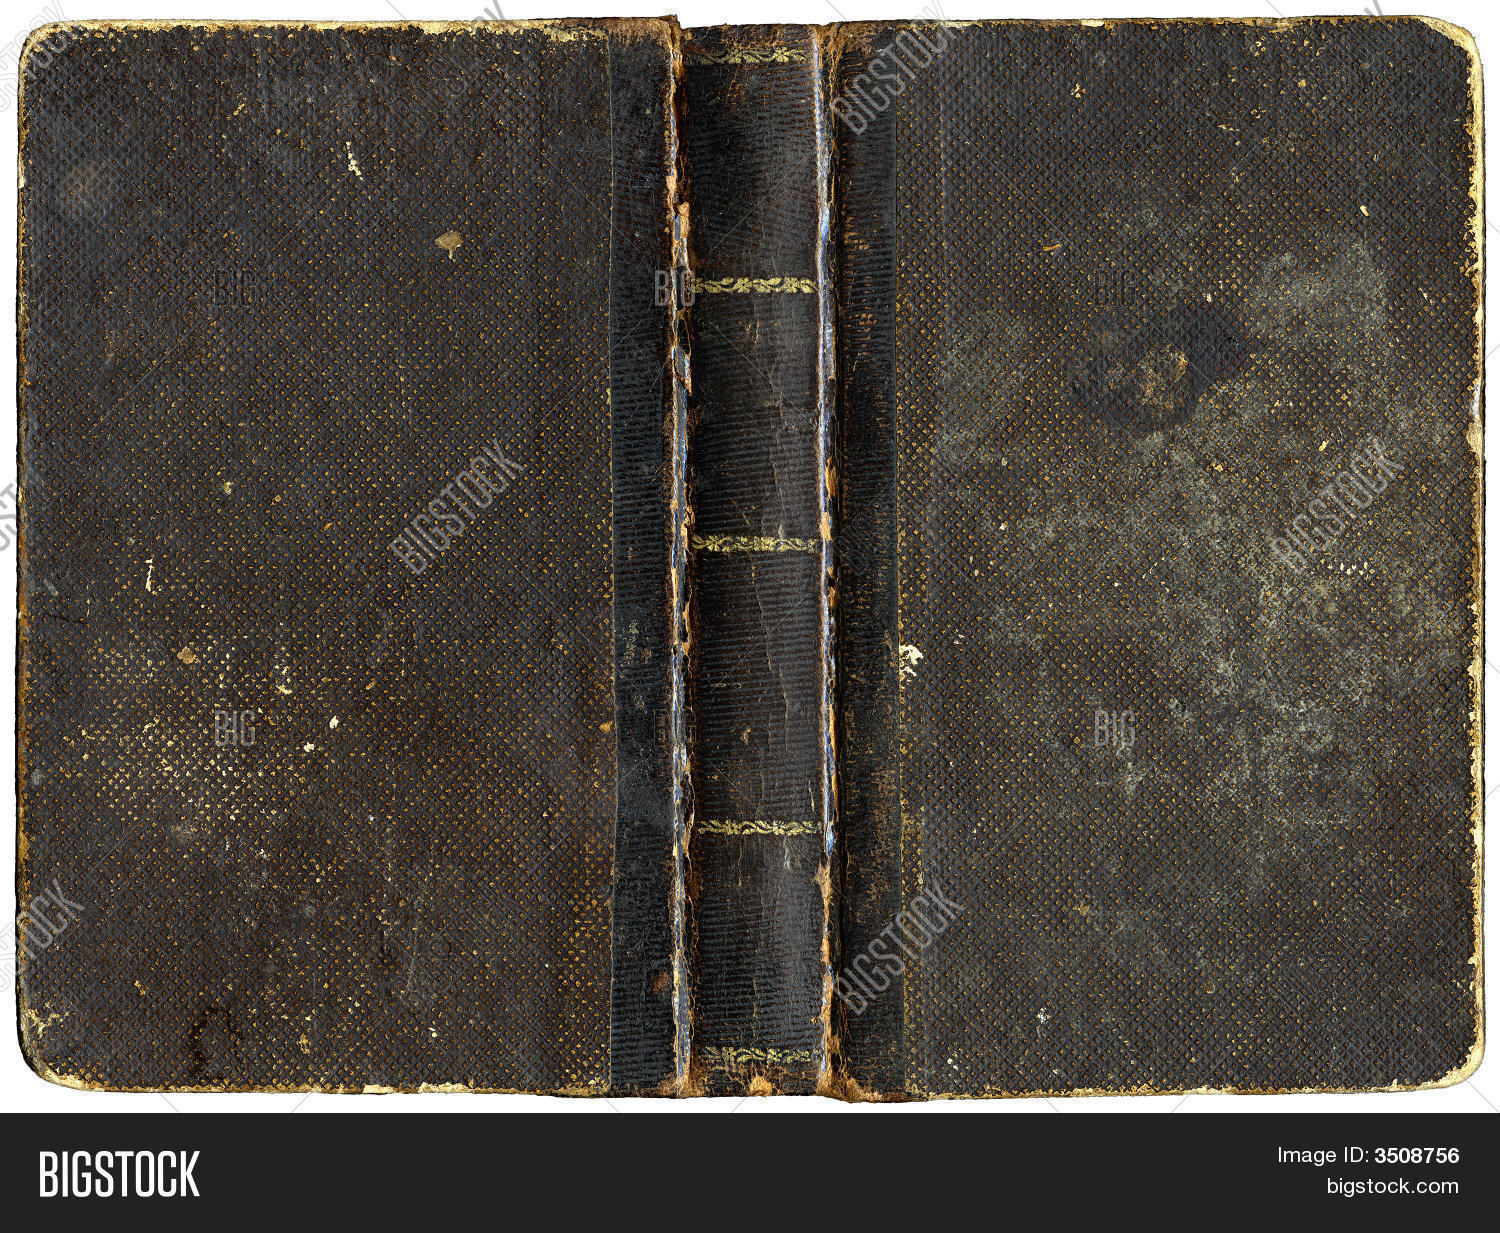 Old Book Cover Image \u0026 Photo | Bigstock